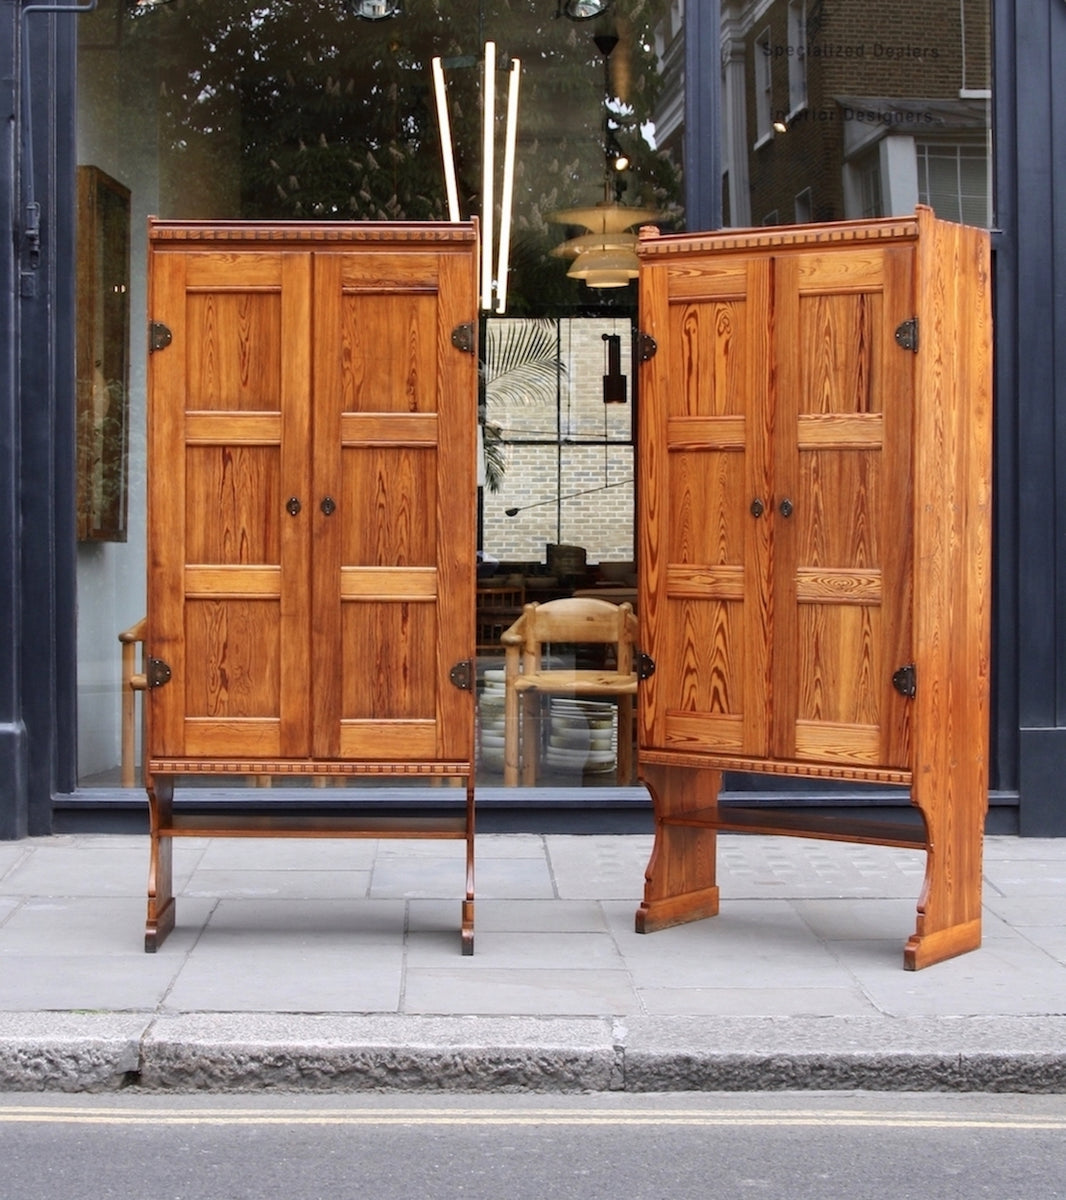 Skønvirke Cabinets Martin Nyrop - unique Danish art nuveau martin nyrup Copenhagen town hall custom made furniture gesamtkunstwerk early 20th century furniture pine patina aged pair of cabinets